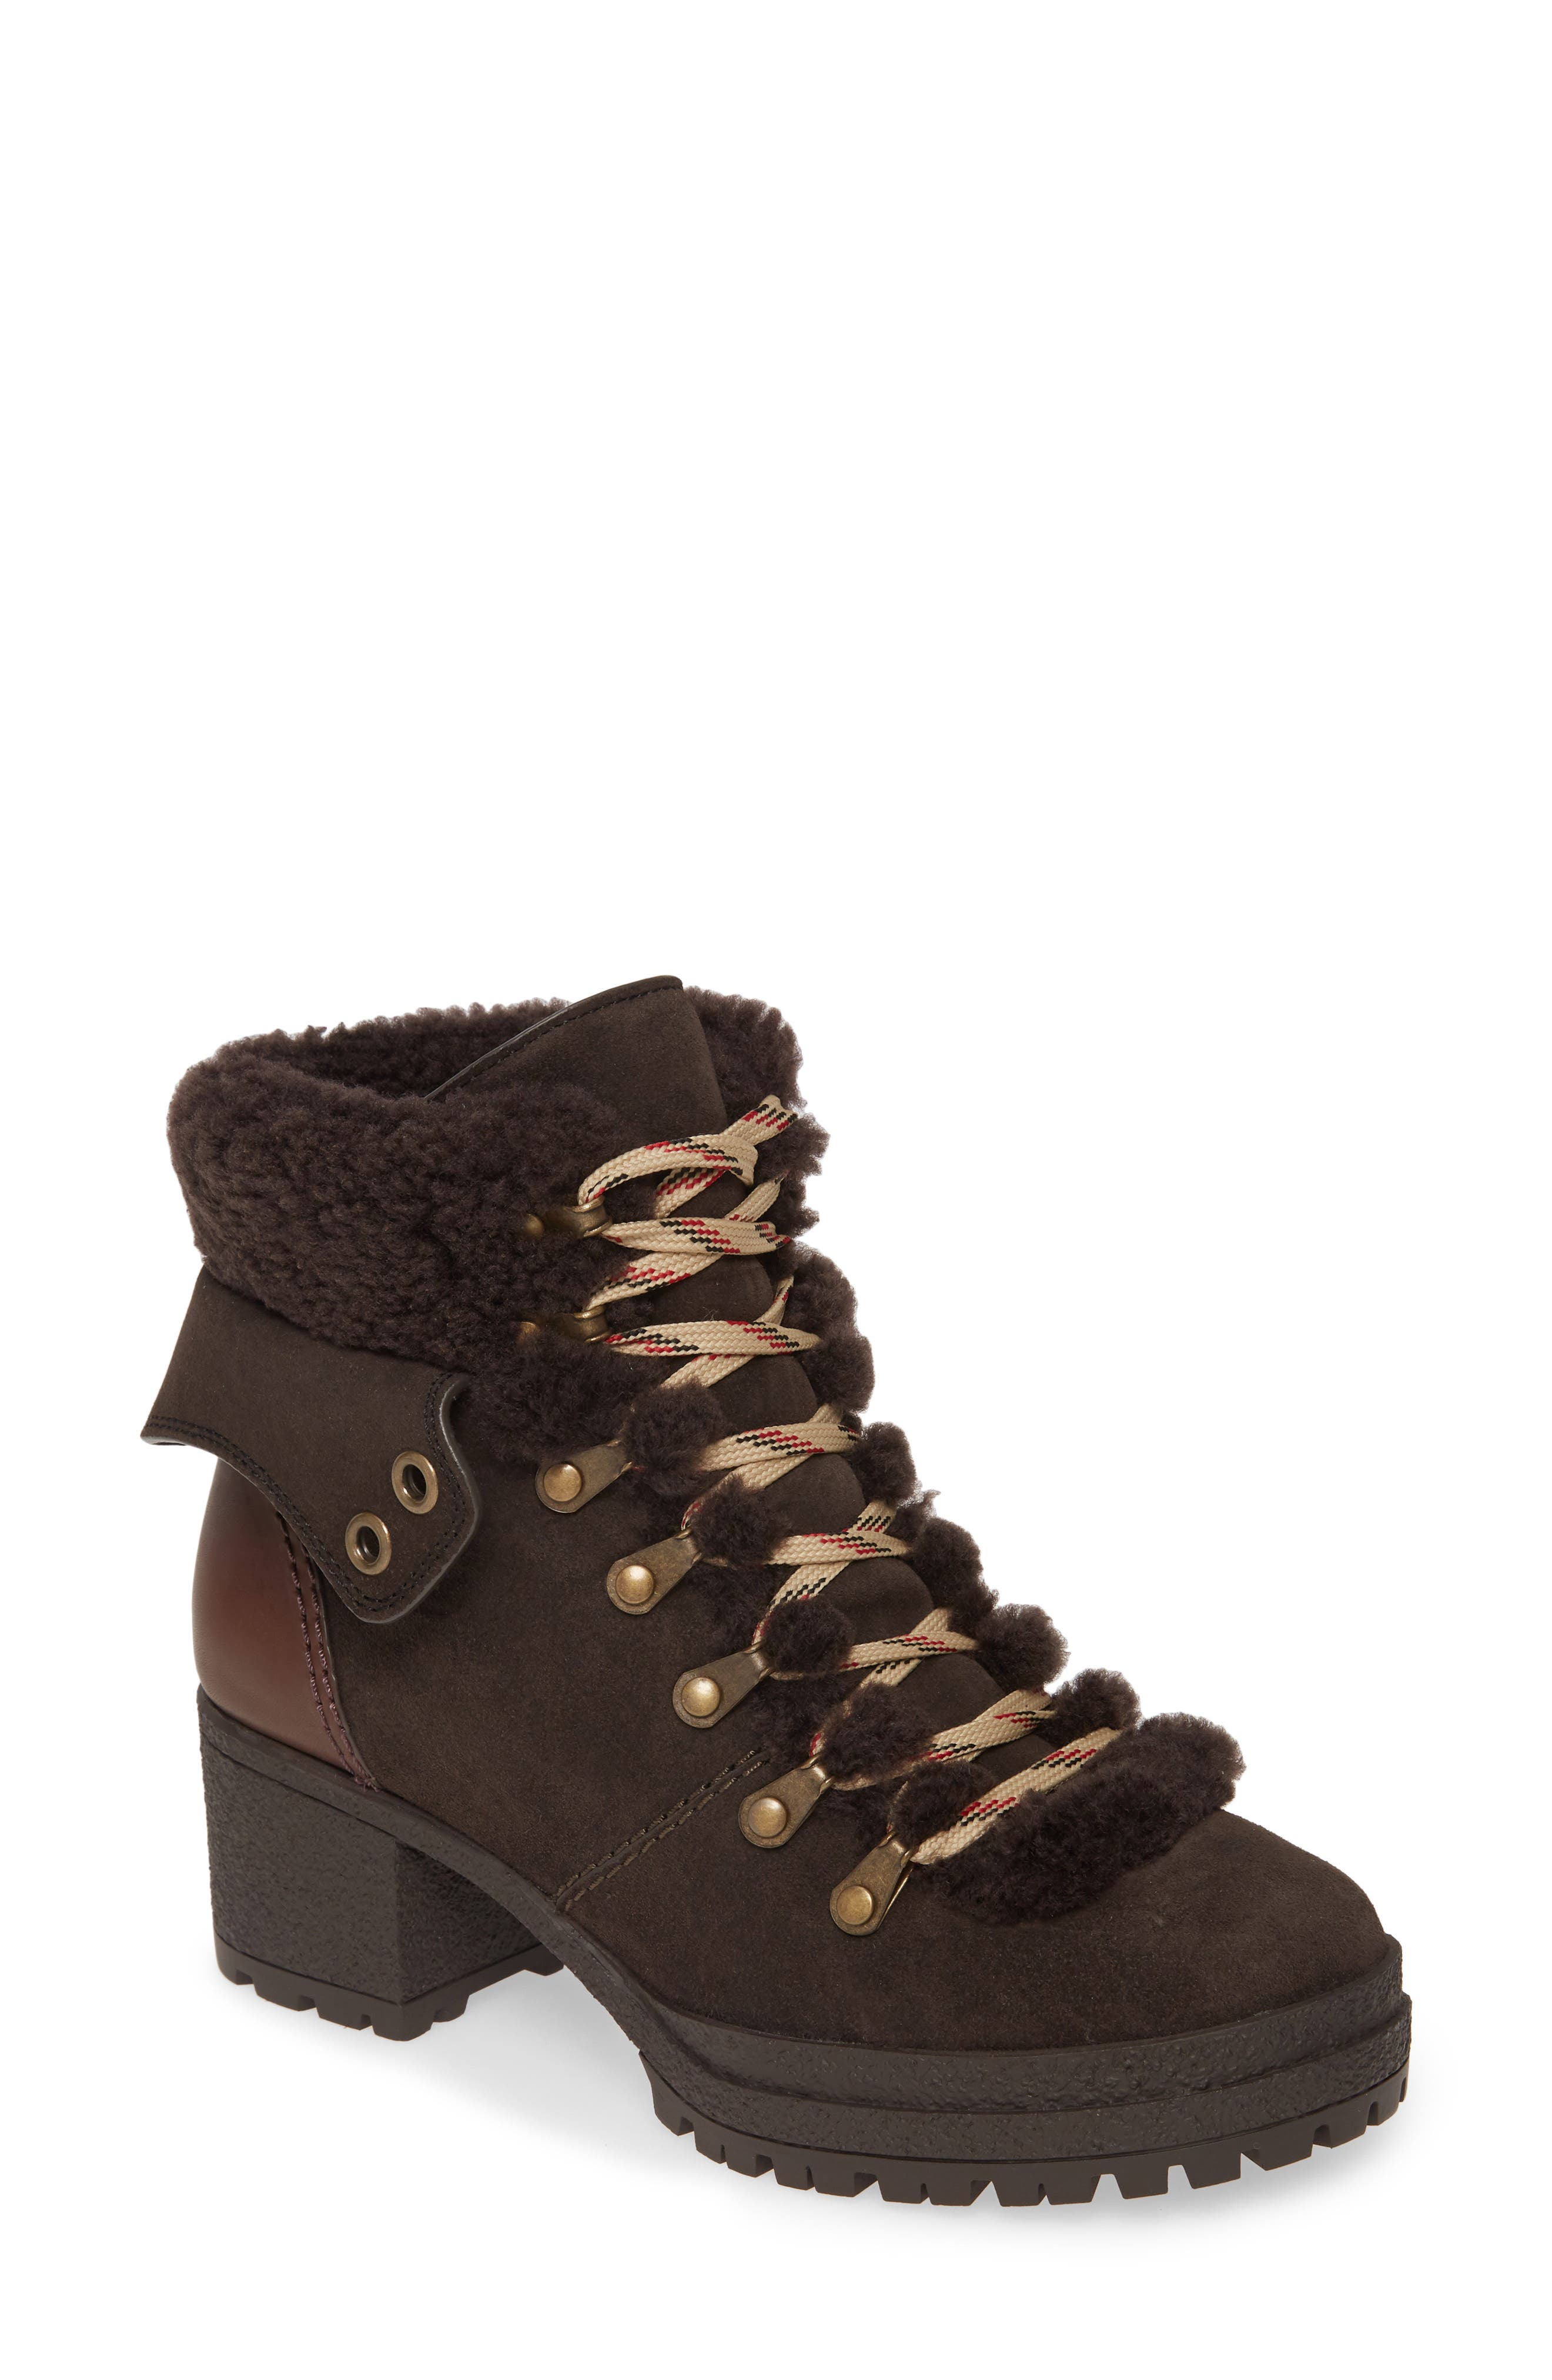 Women's See By Chloé Boots   Nordstrom